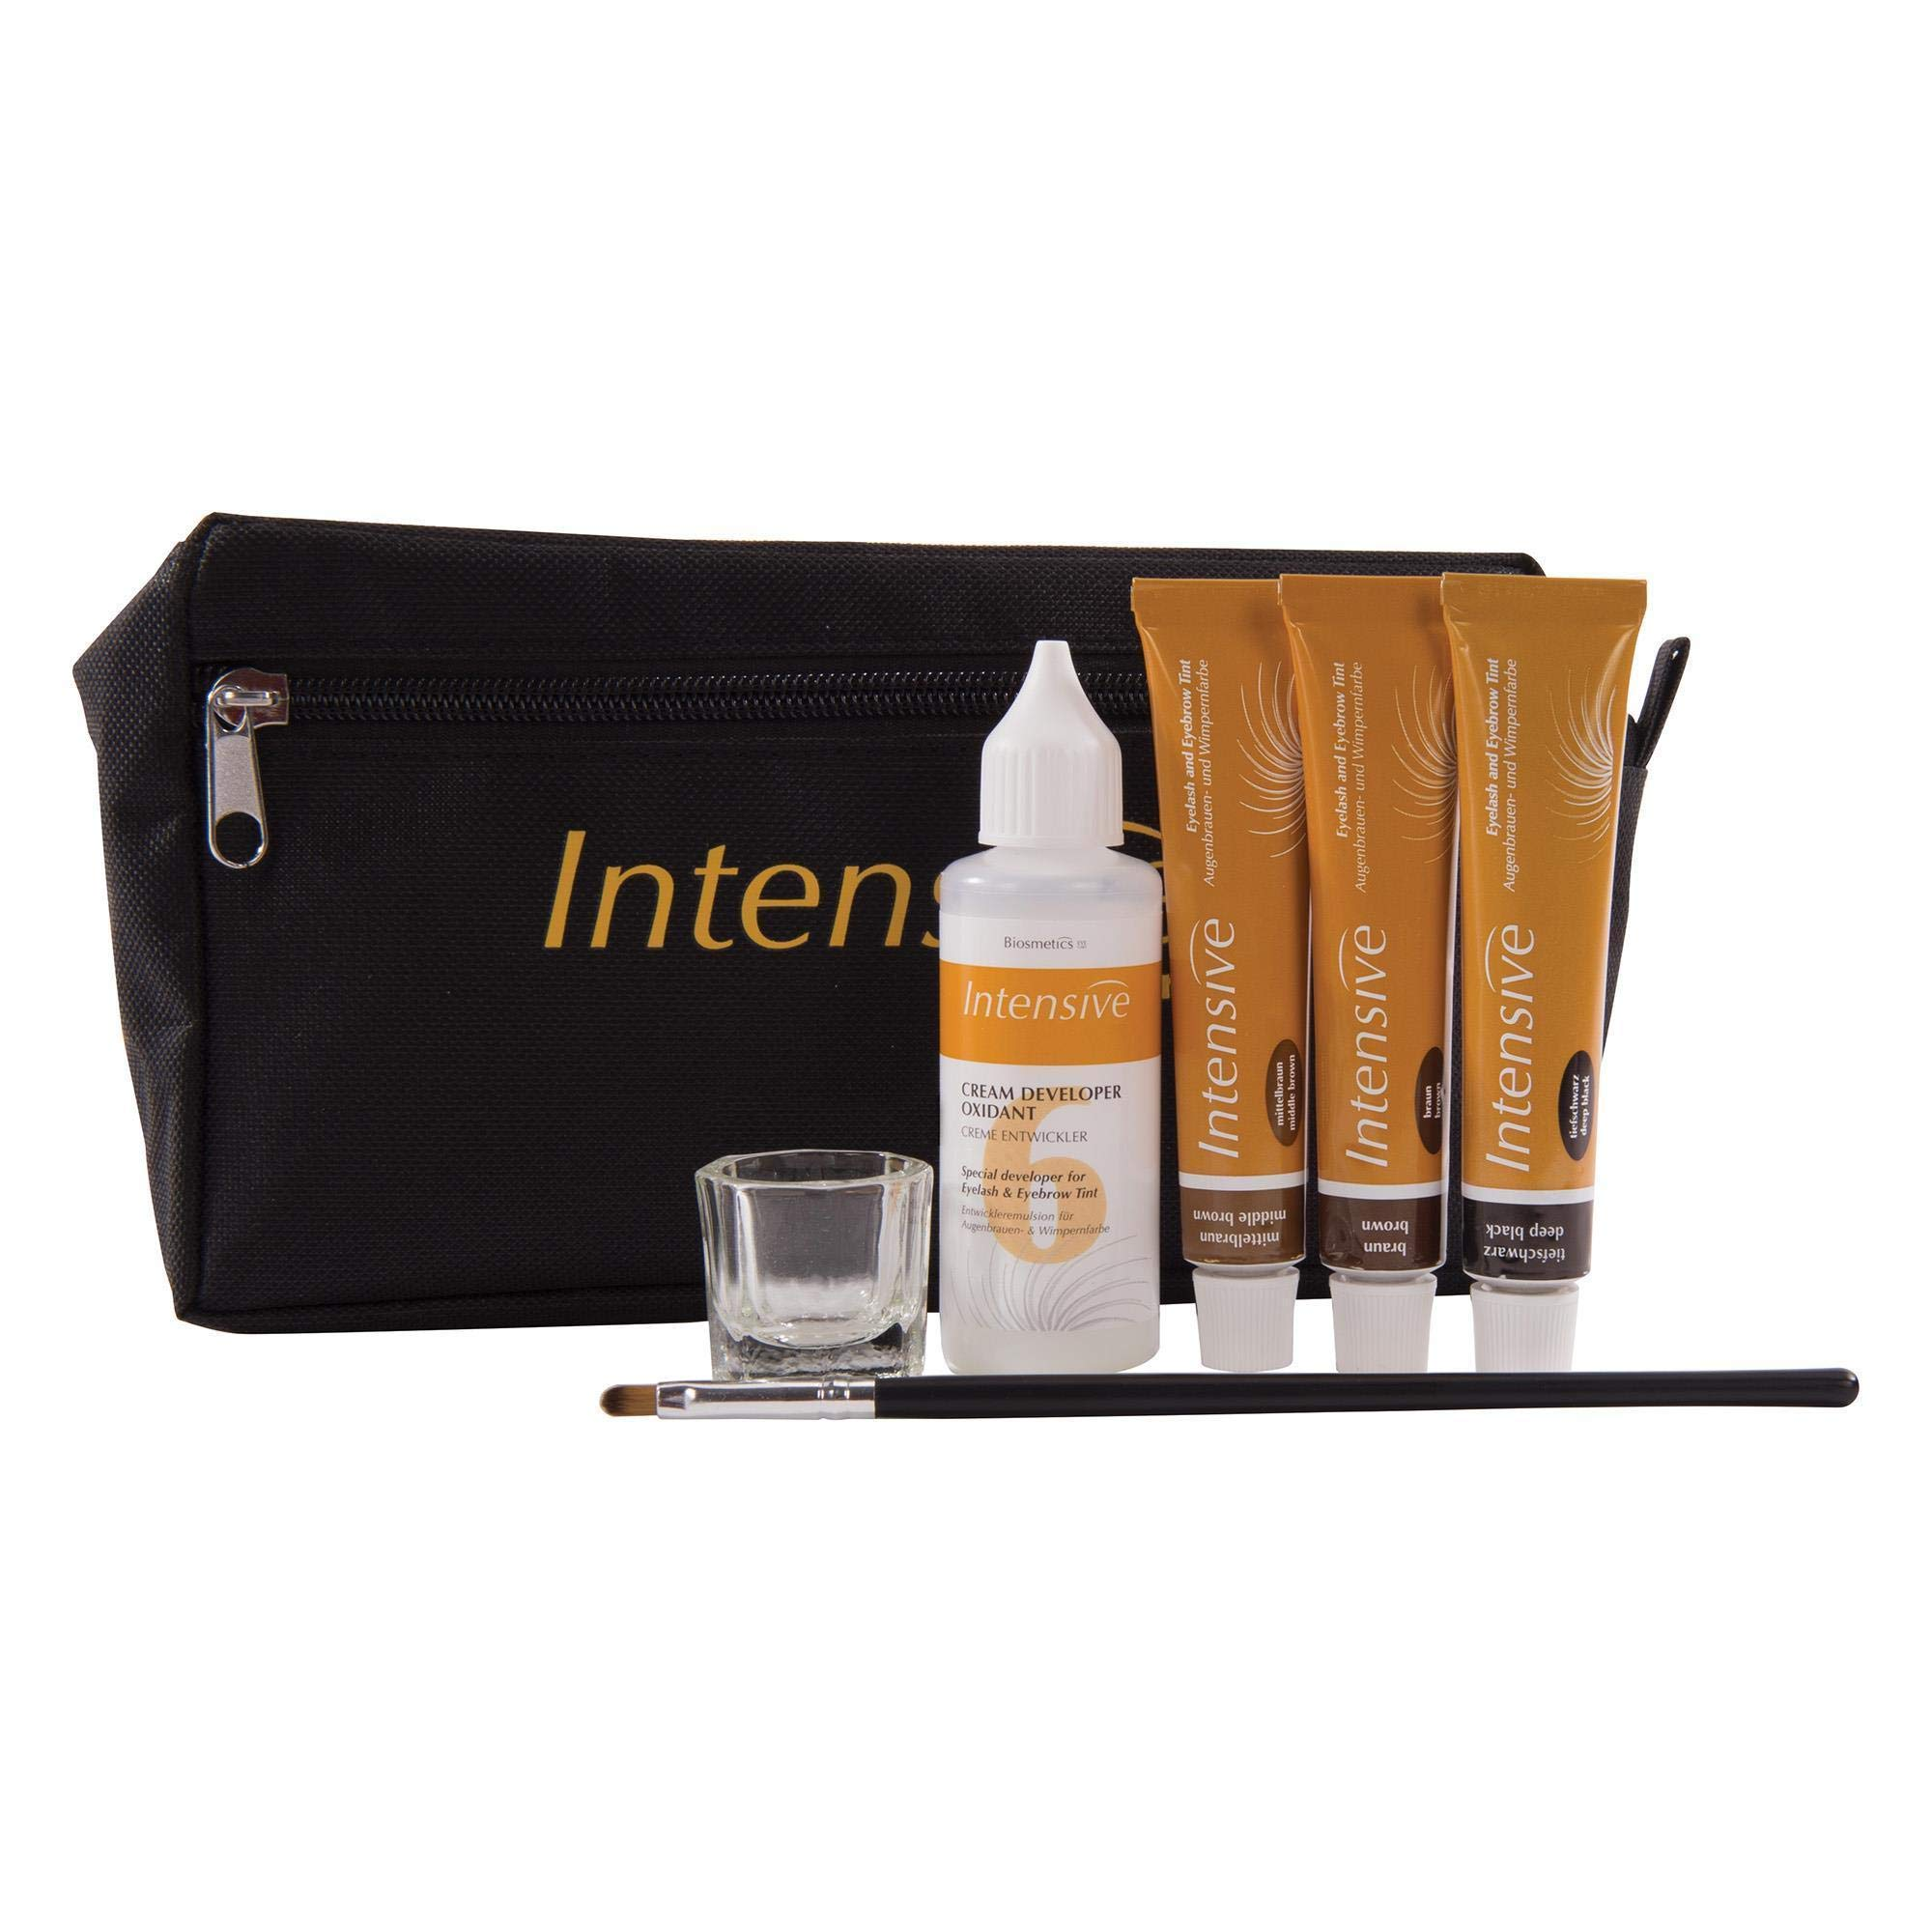 Intensive Lash & Brow Tinting Starter Kit | Trusted Professional Formula | Provides 90 Services by Intensive